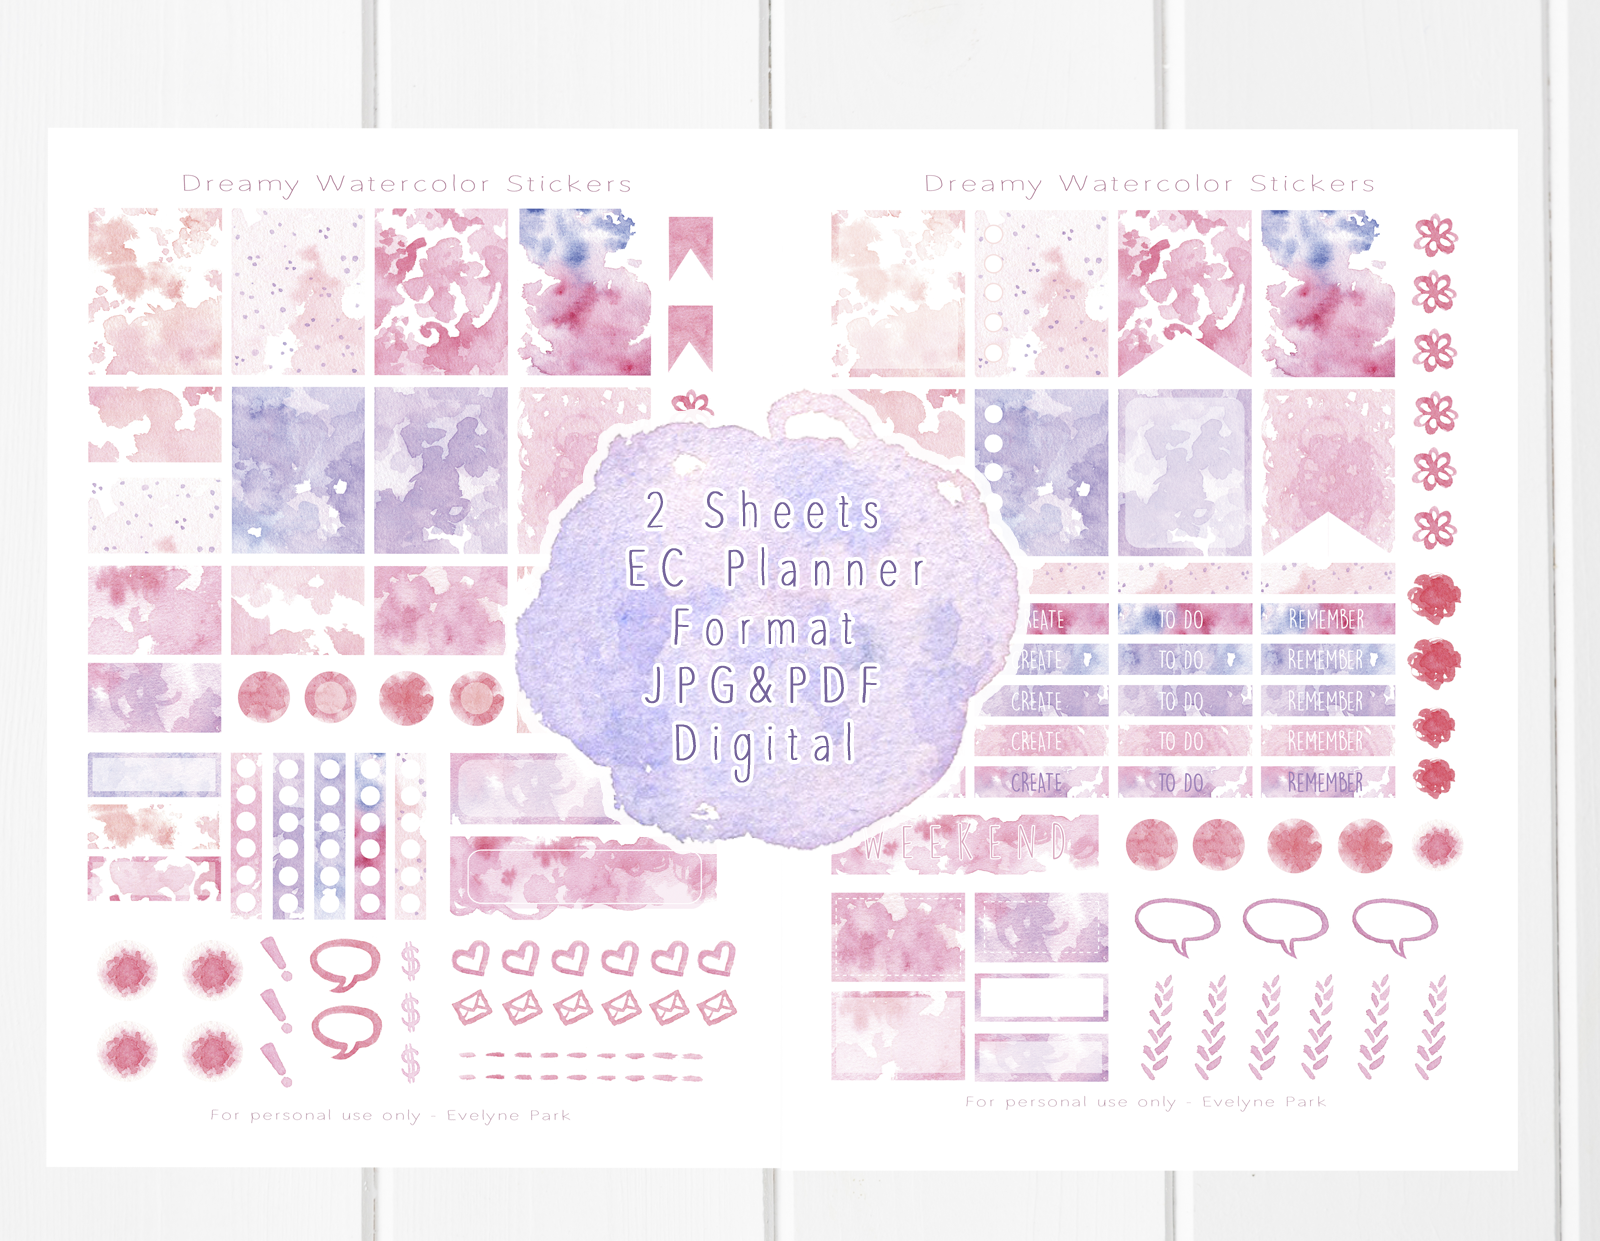 My hand drawn watercolor textures and patterns planner sticker set. The printable file can be found in my Etsy shop 'evydraws'.